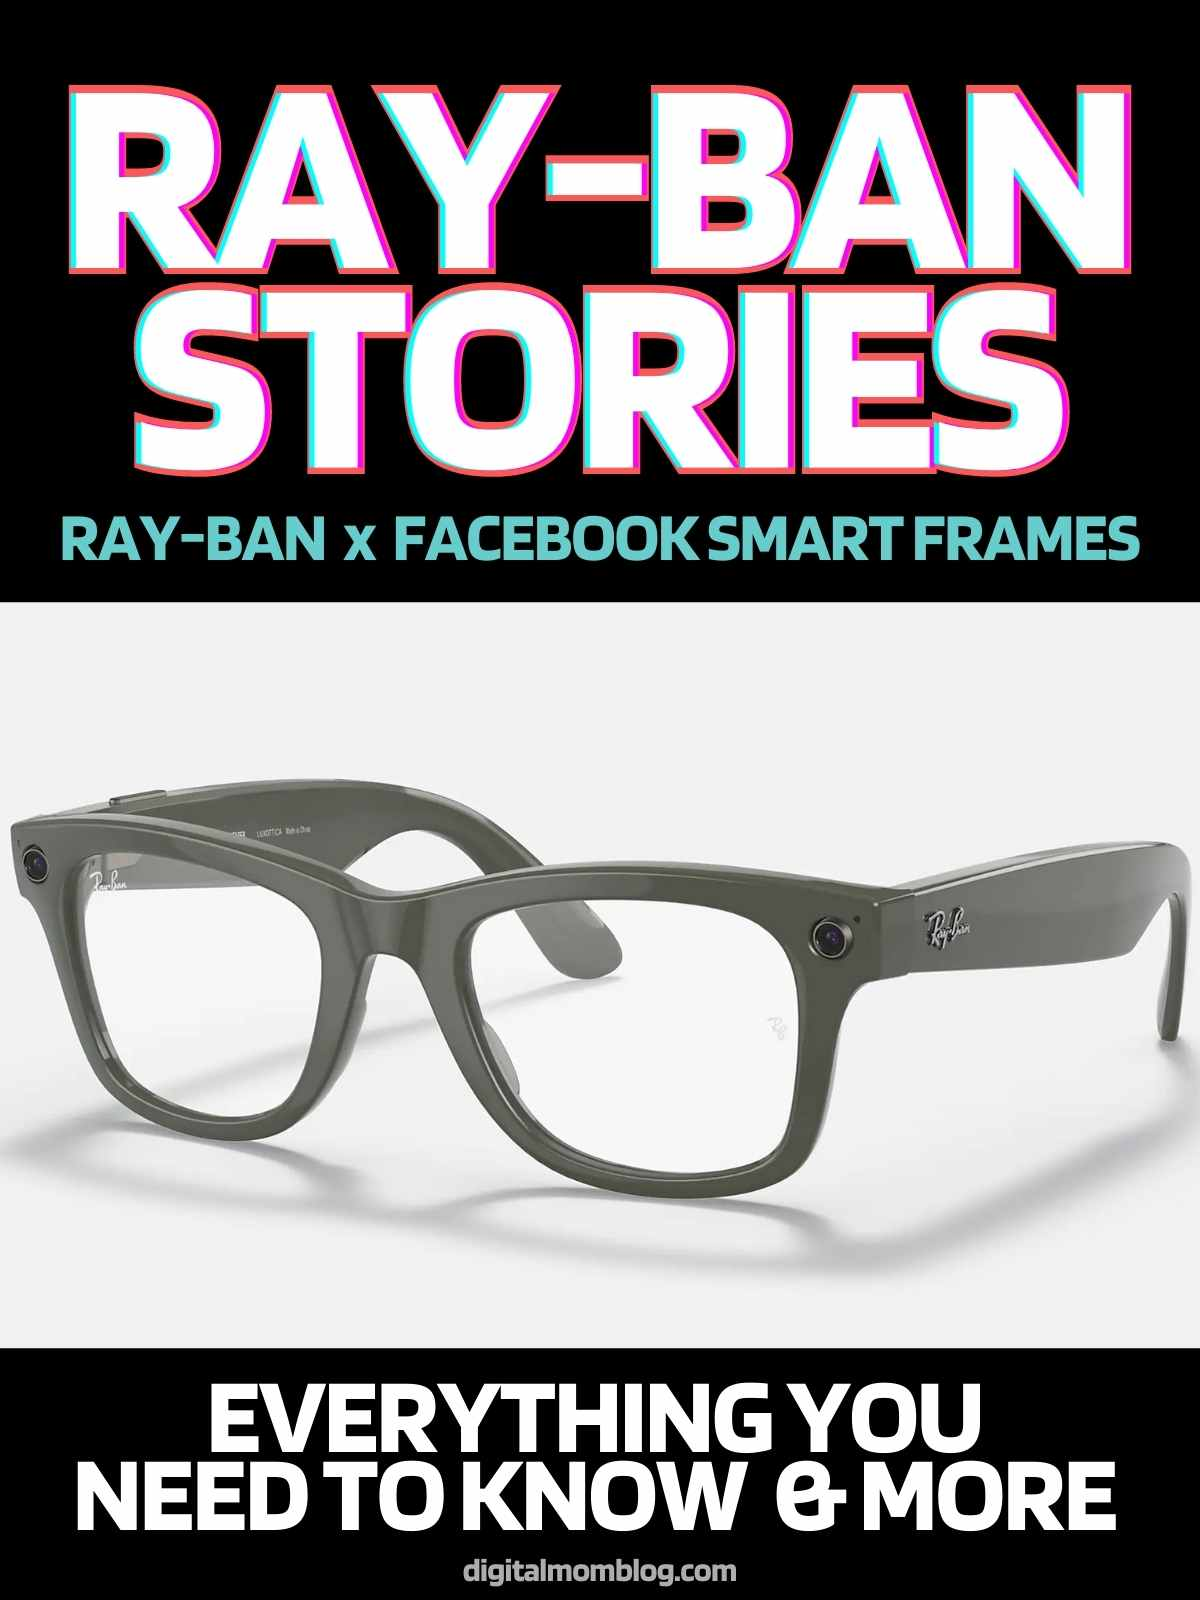 Ray-Ban Stories Review - everything you want to know about the new Facebook x Ray-Ban smart frames and more